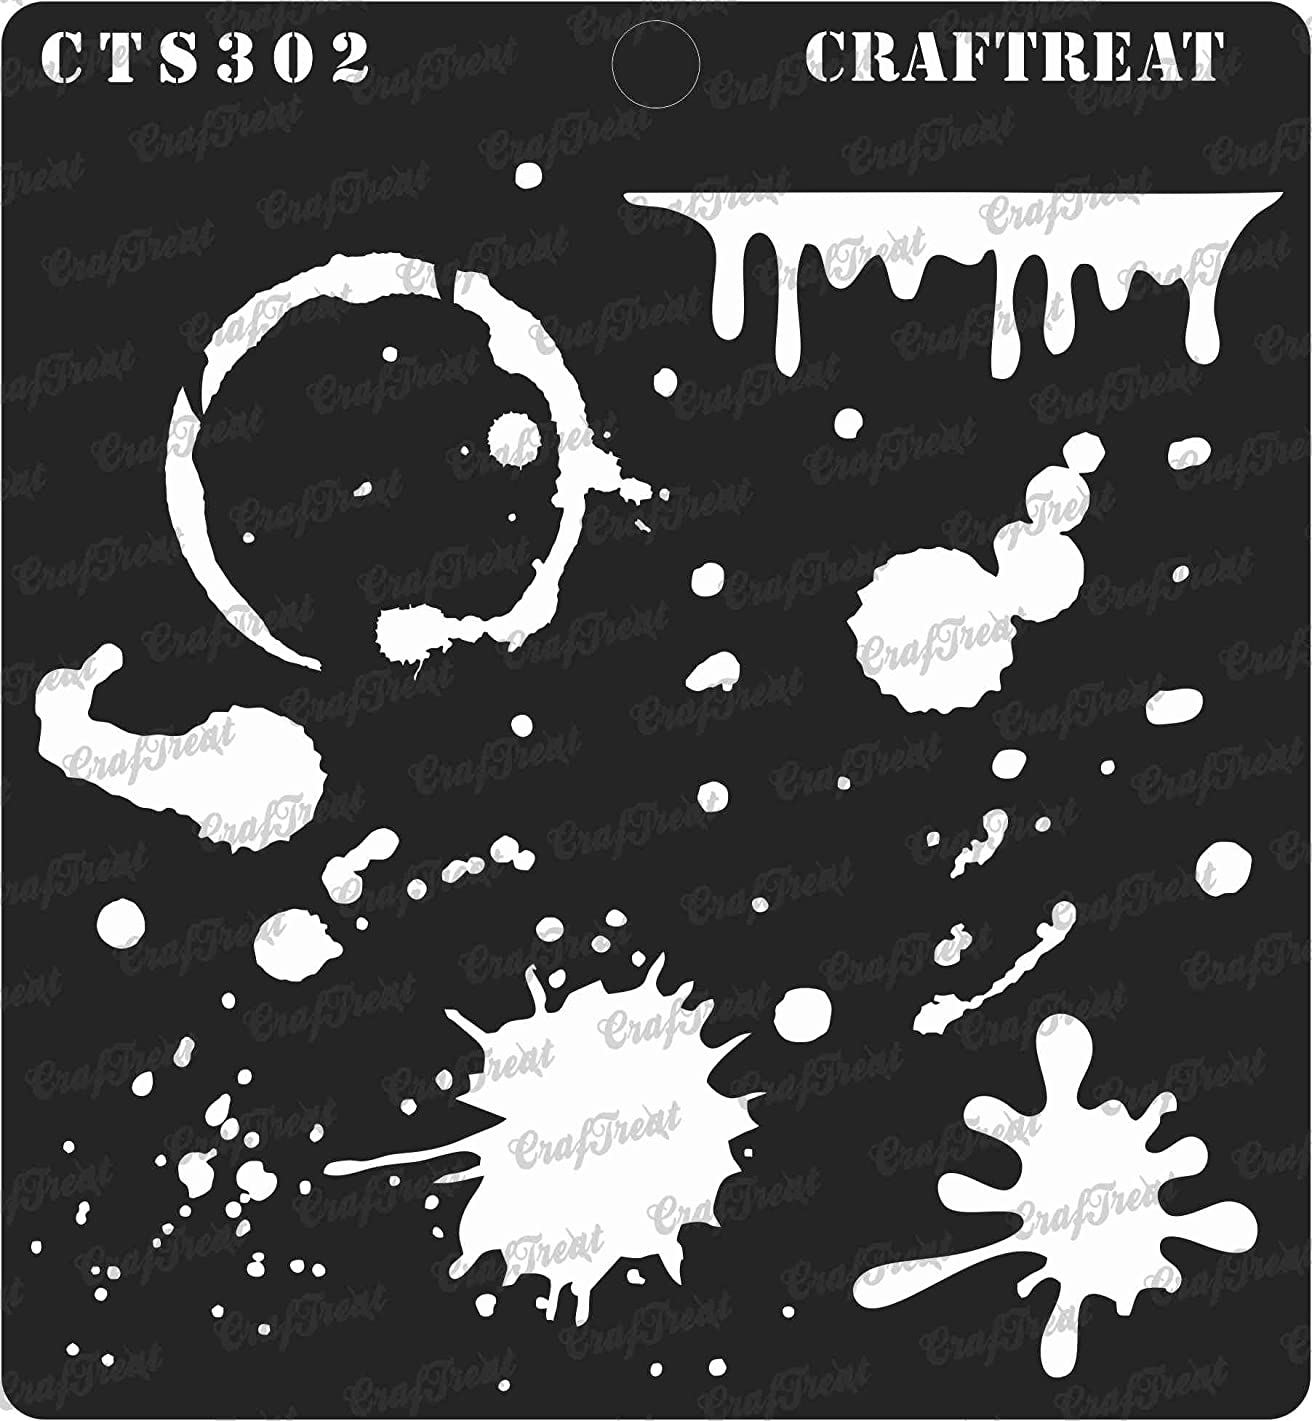 CrafTreat Stencil - Stains and Splatters | Reusable Painting Template for Journal, Home Decor, Crafting, DIY Albums, Scrapbook and Printing on Paper, Floor, Wall, Tile, Fabric, Wood 6